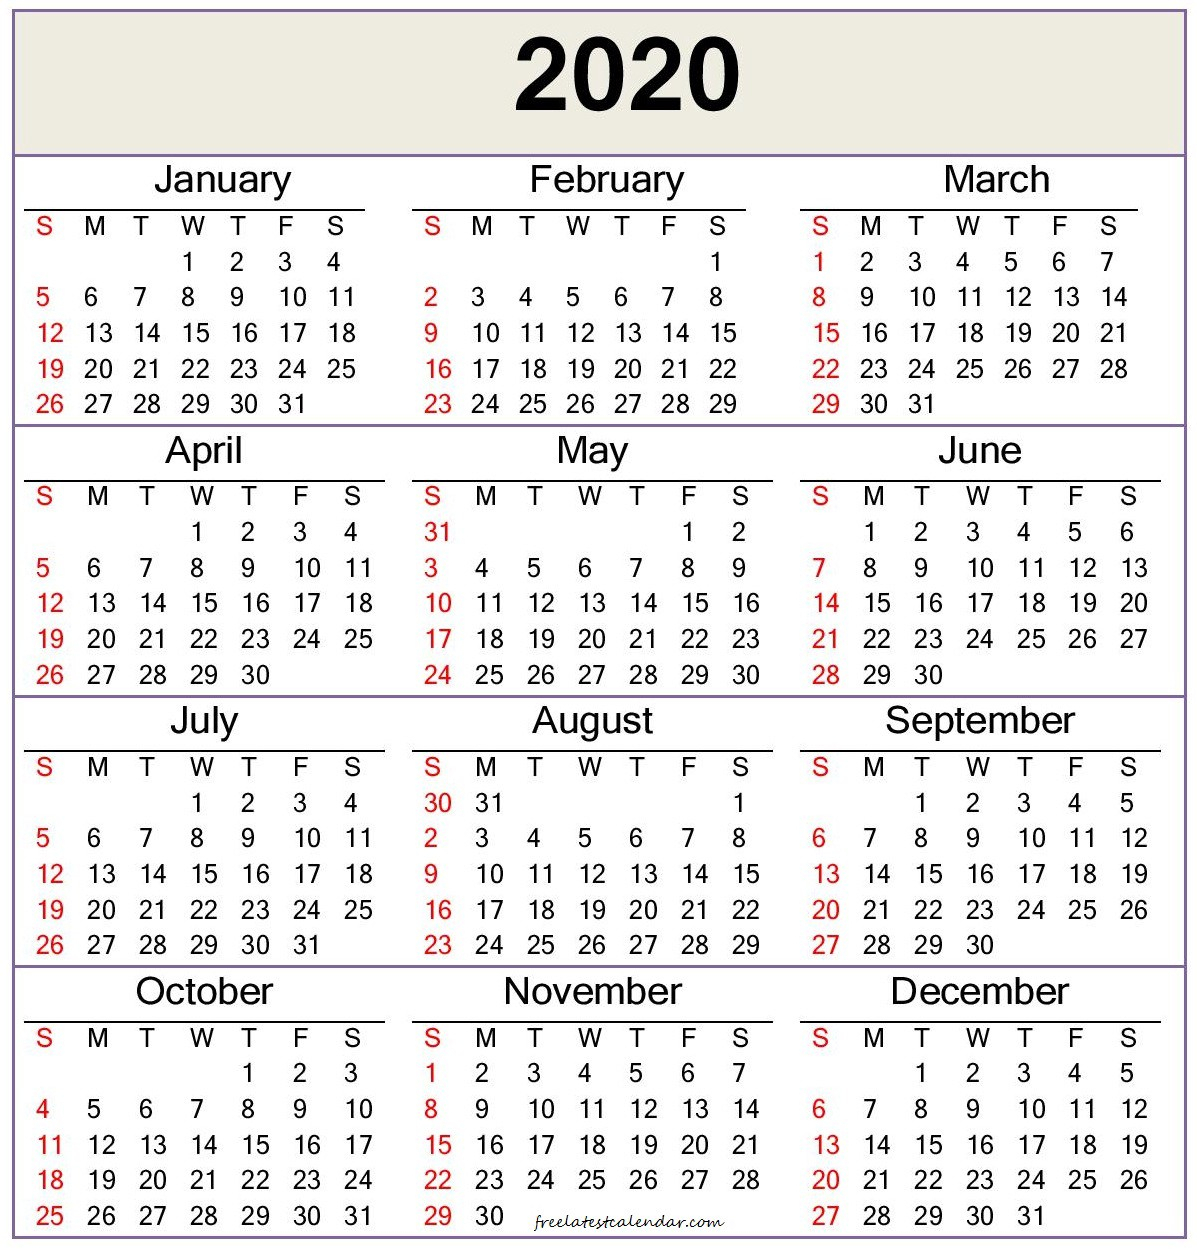 2020 Calendar Template — Word, Pdf - Free Latest Calendar